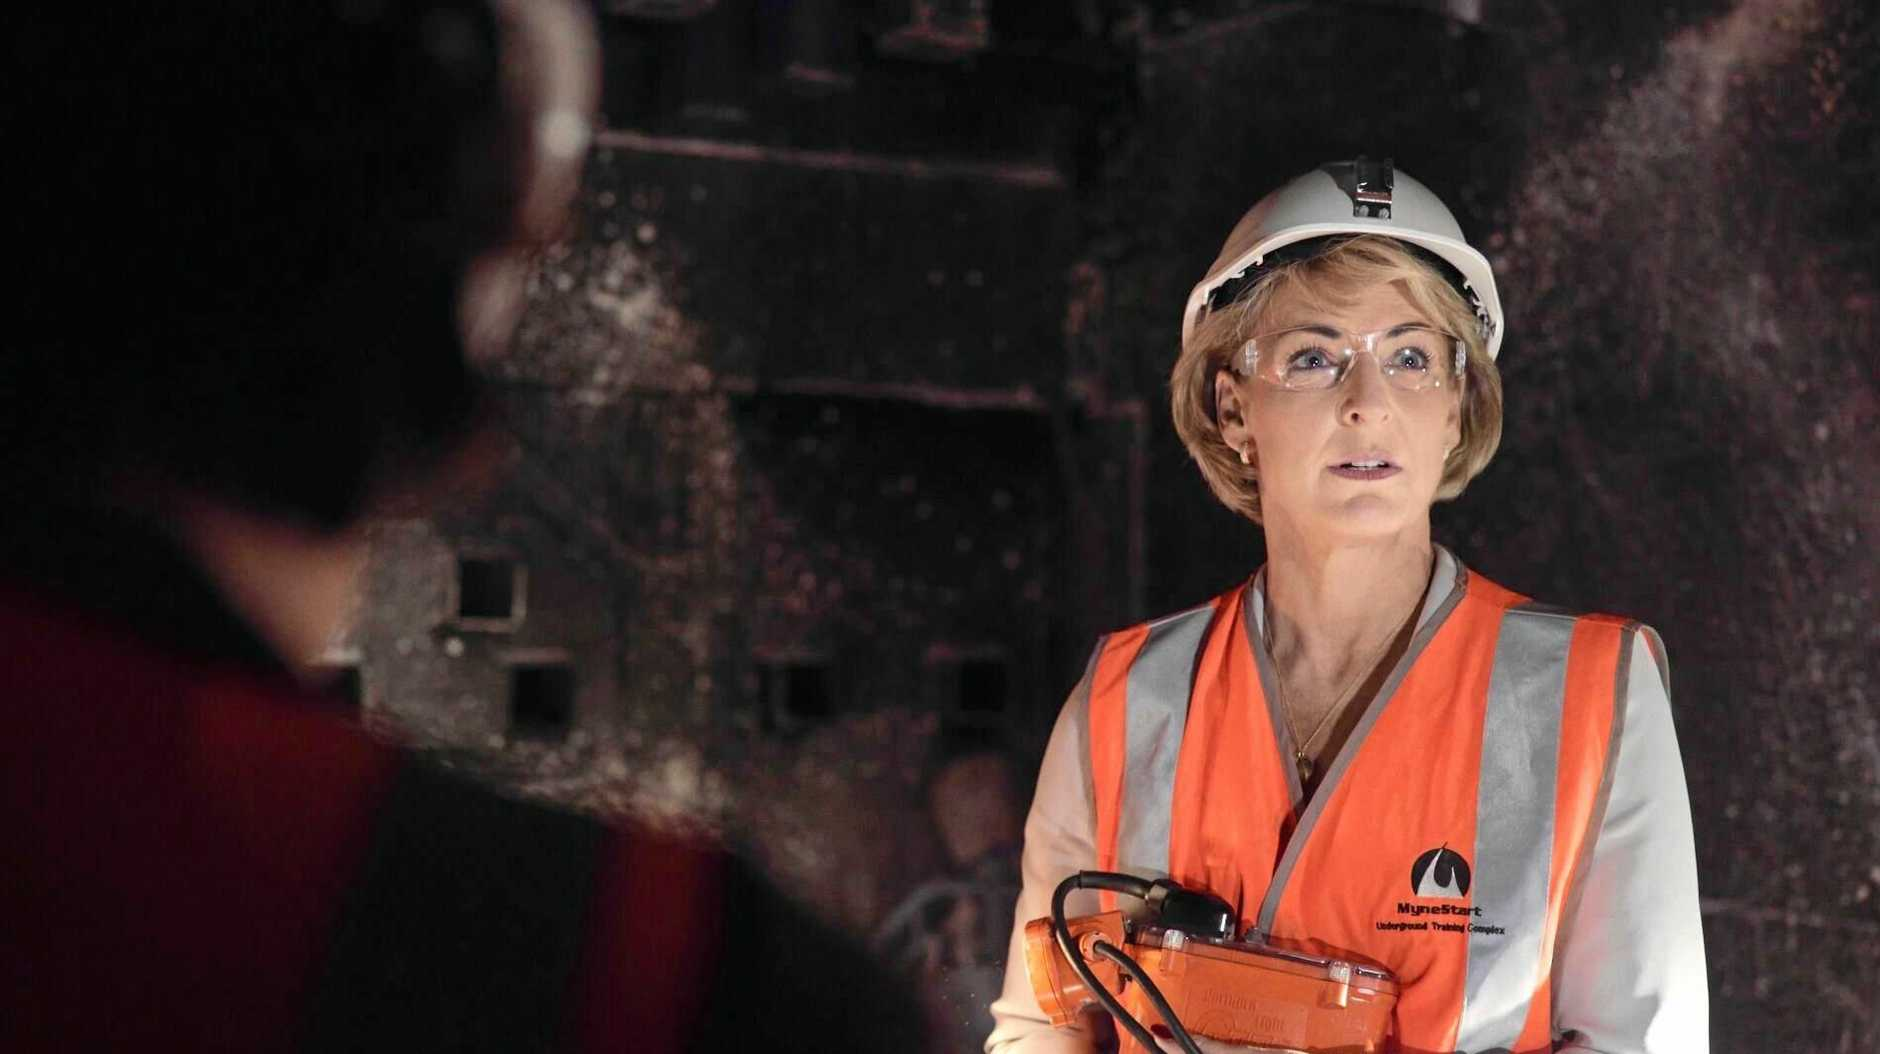 Minister for Jobs and Innovation Senator Michaelia Cash takes a look inside the  Simulated Underground Mine Facility at MyneSight's River Street, Mackay building.